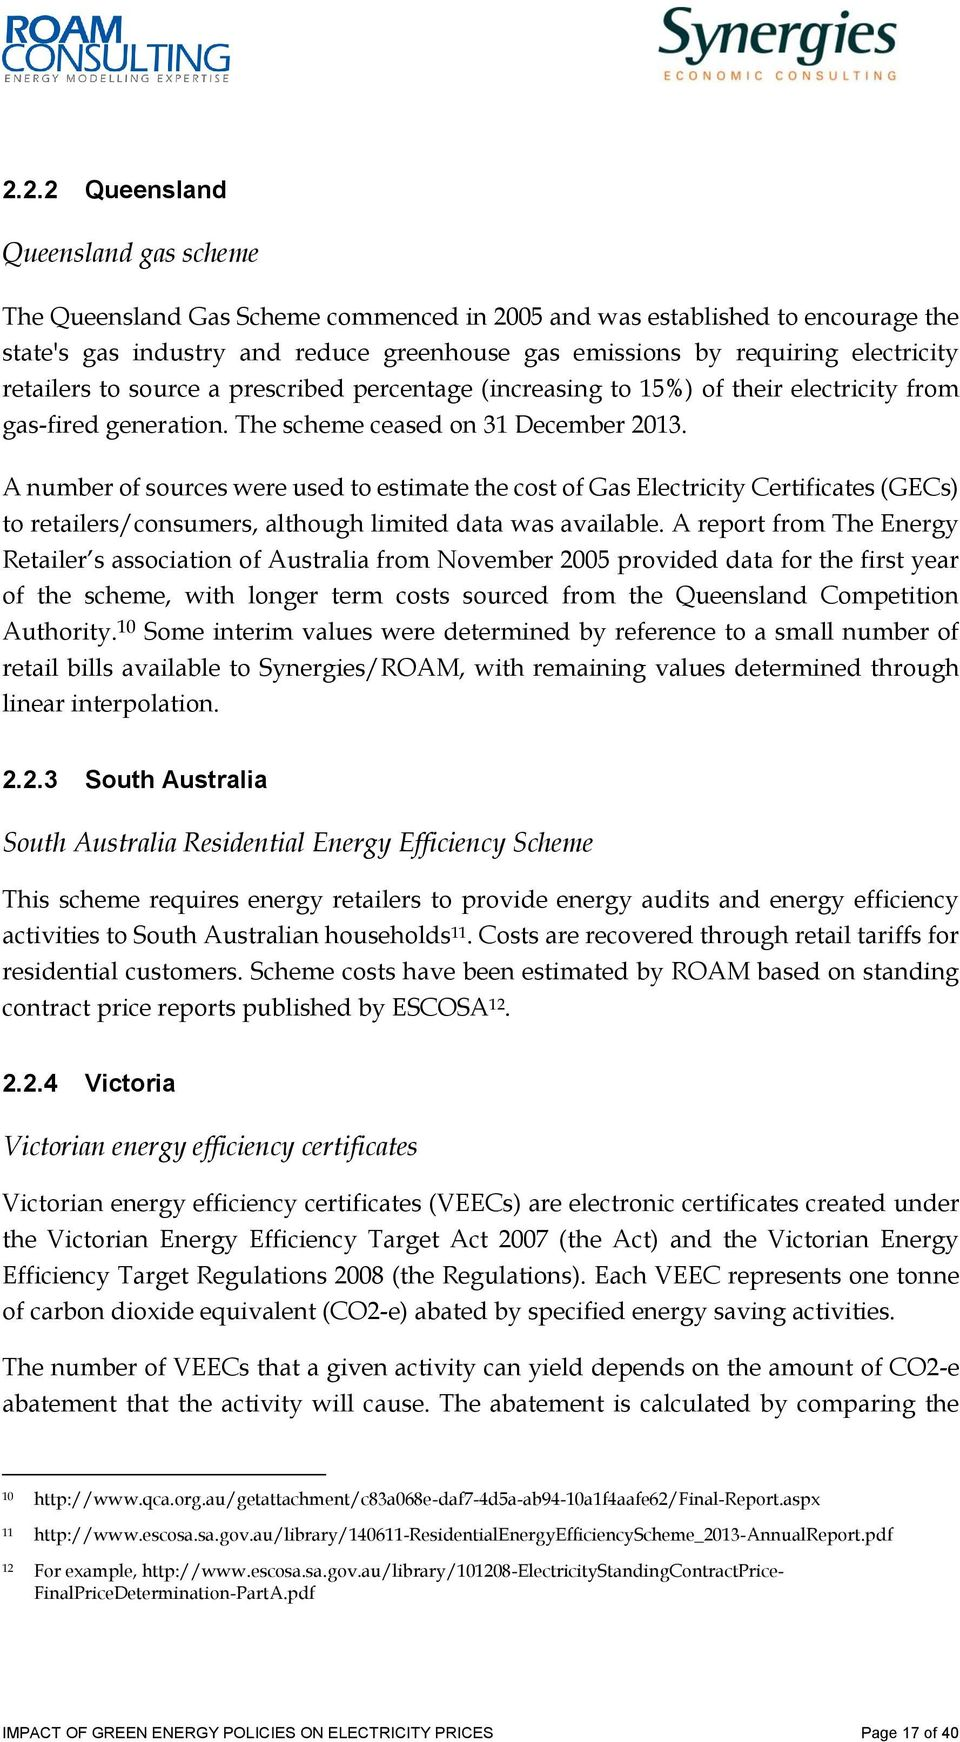 A number of sources were used to estimate the cost of Gas Electricity Certificates (GECs) to retailers/consumers, although limited data was available.